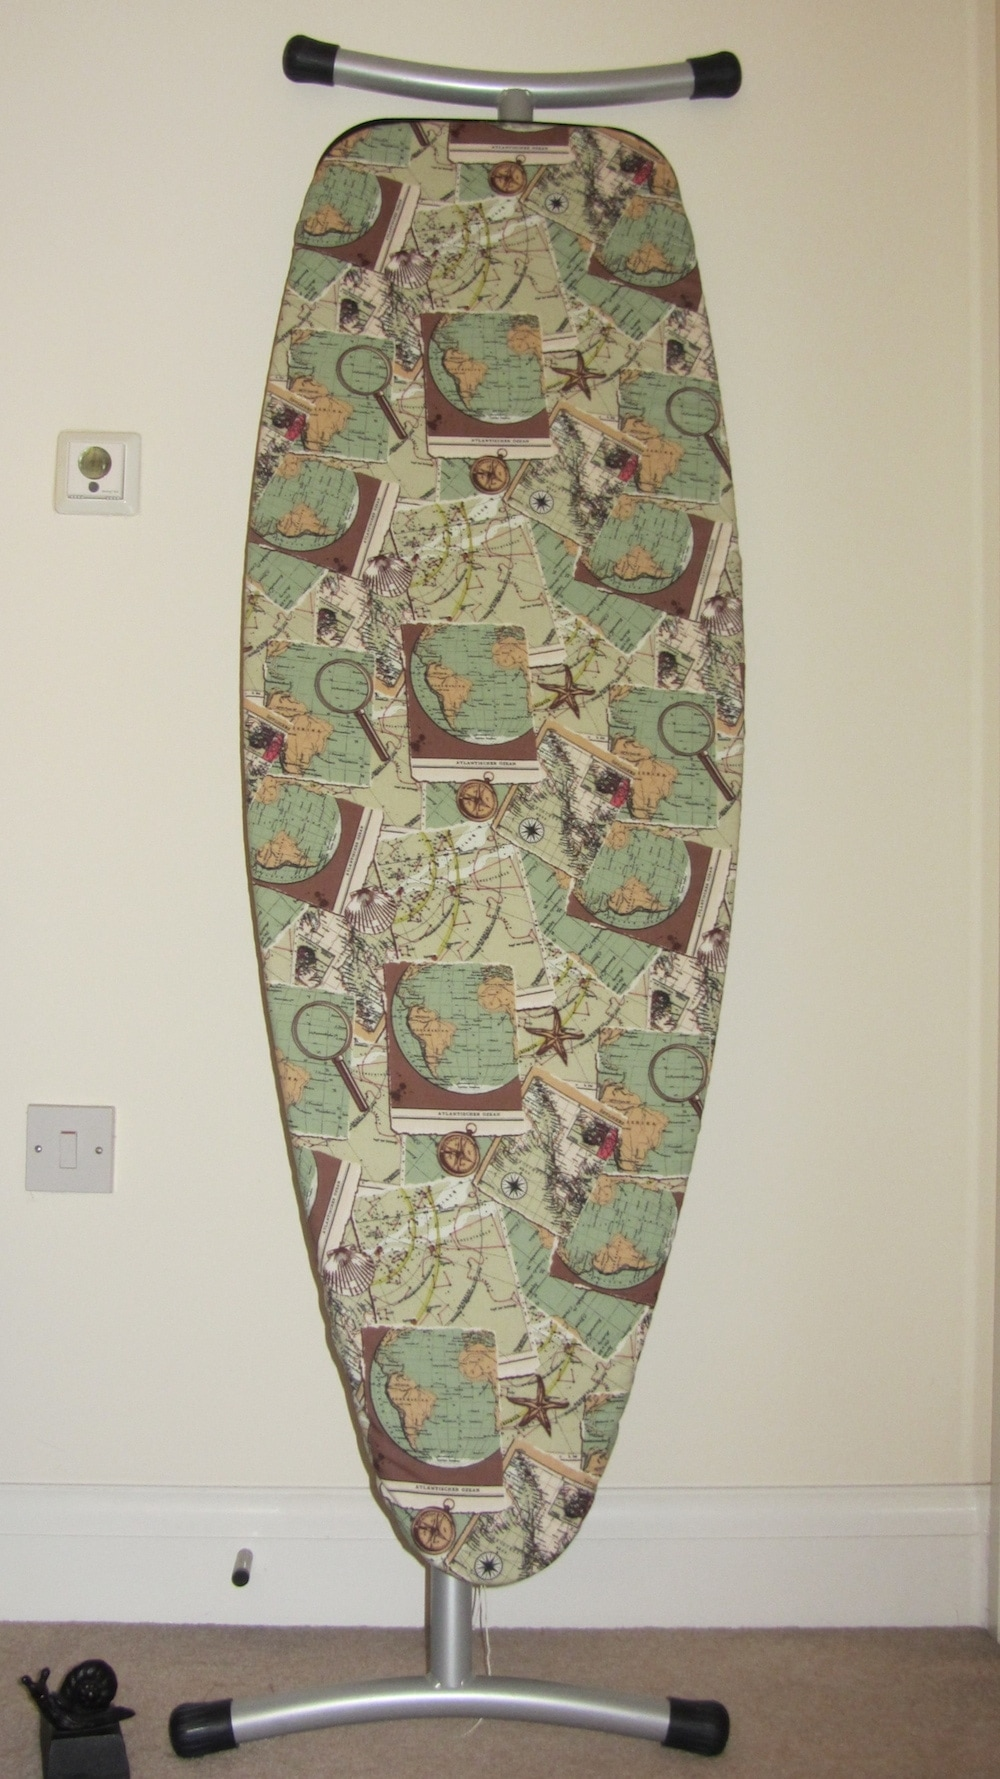 How to make an ironing board cover tutorial 8.jpg